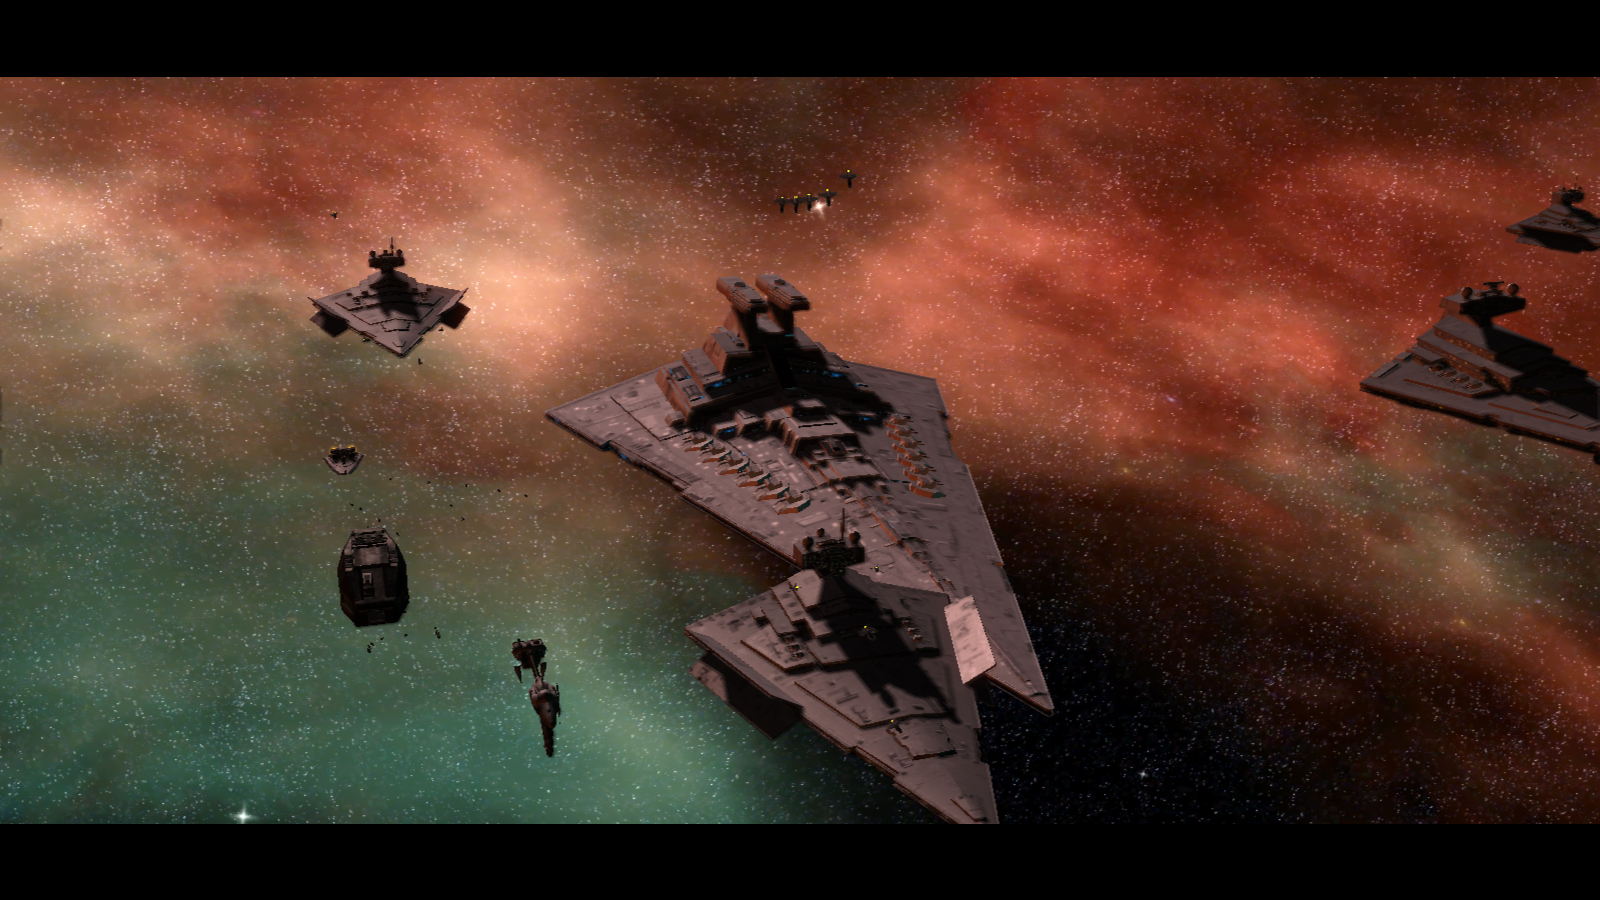 New ships and factions